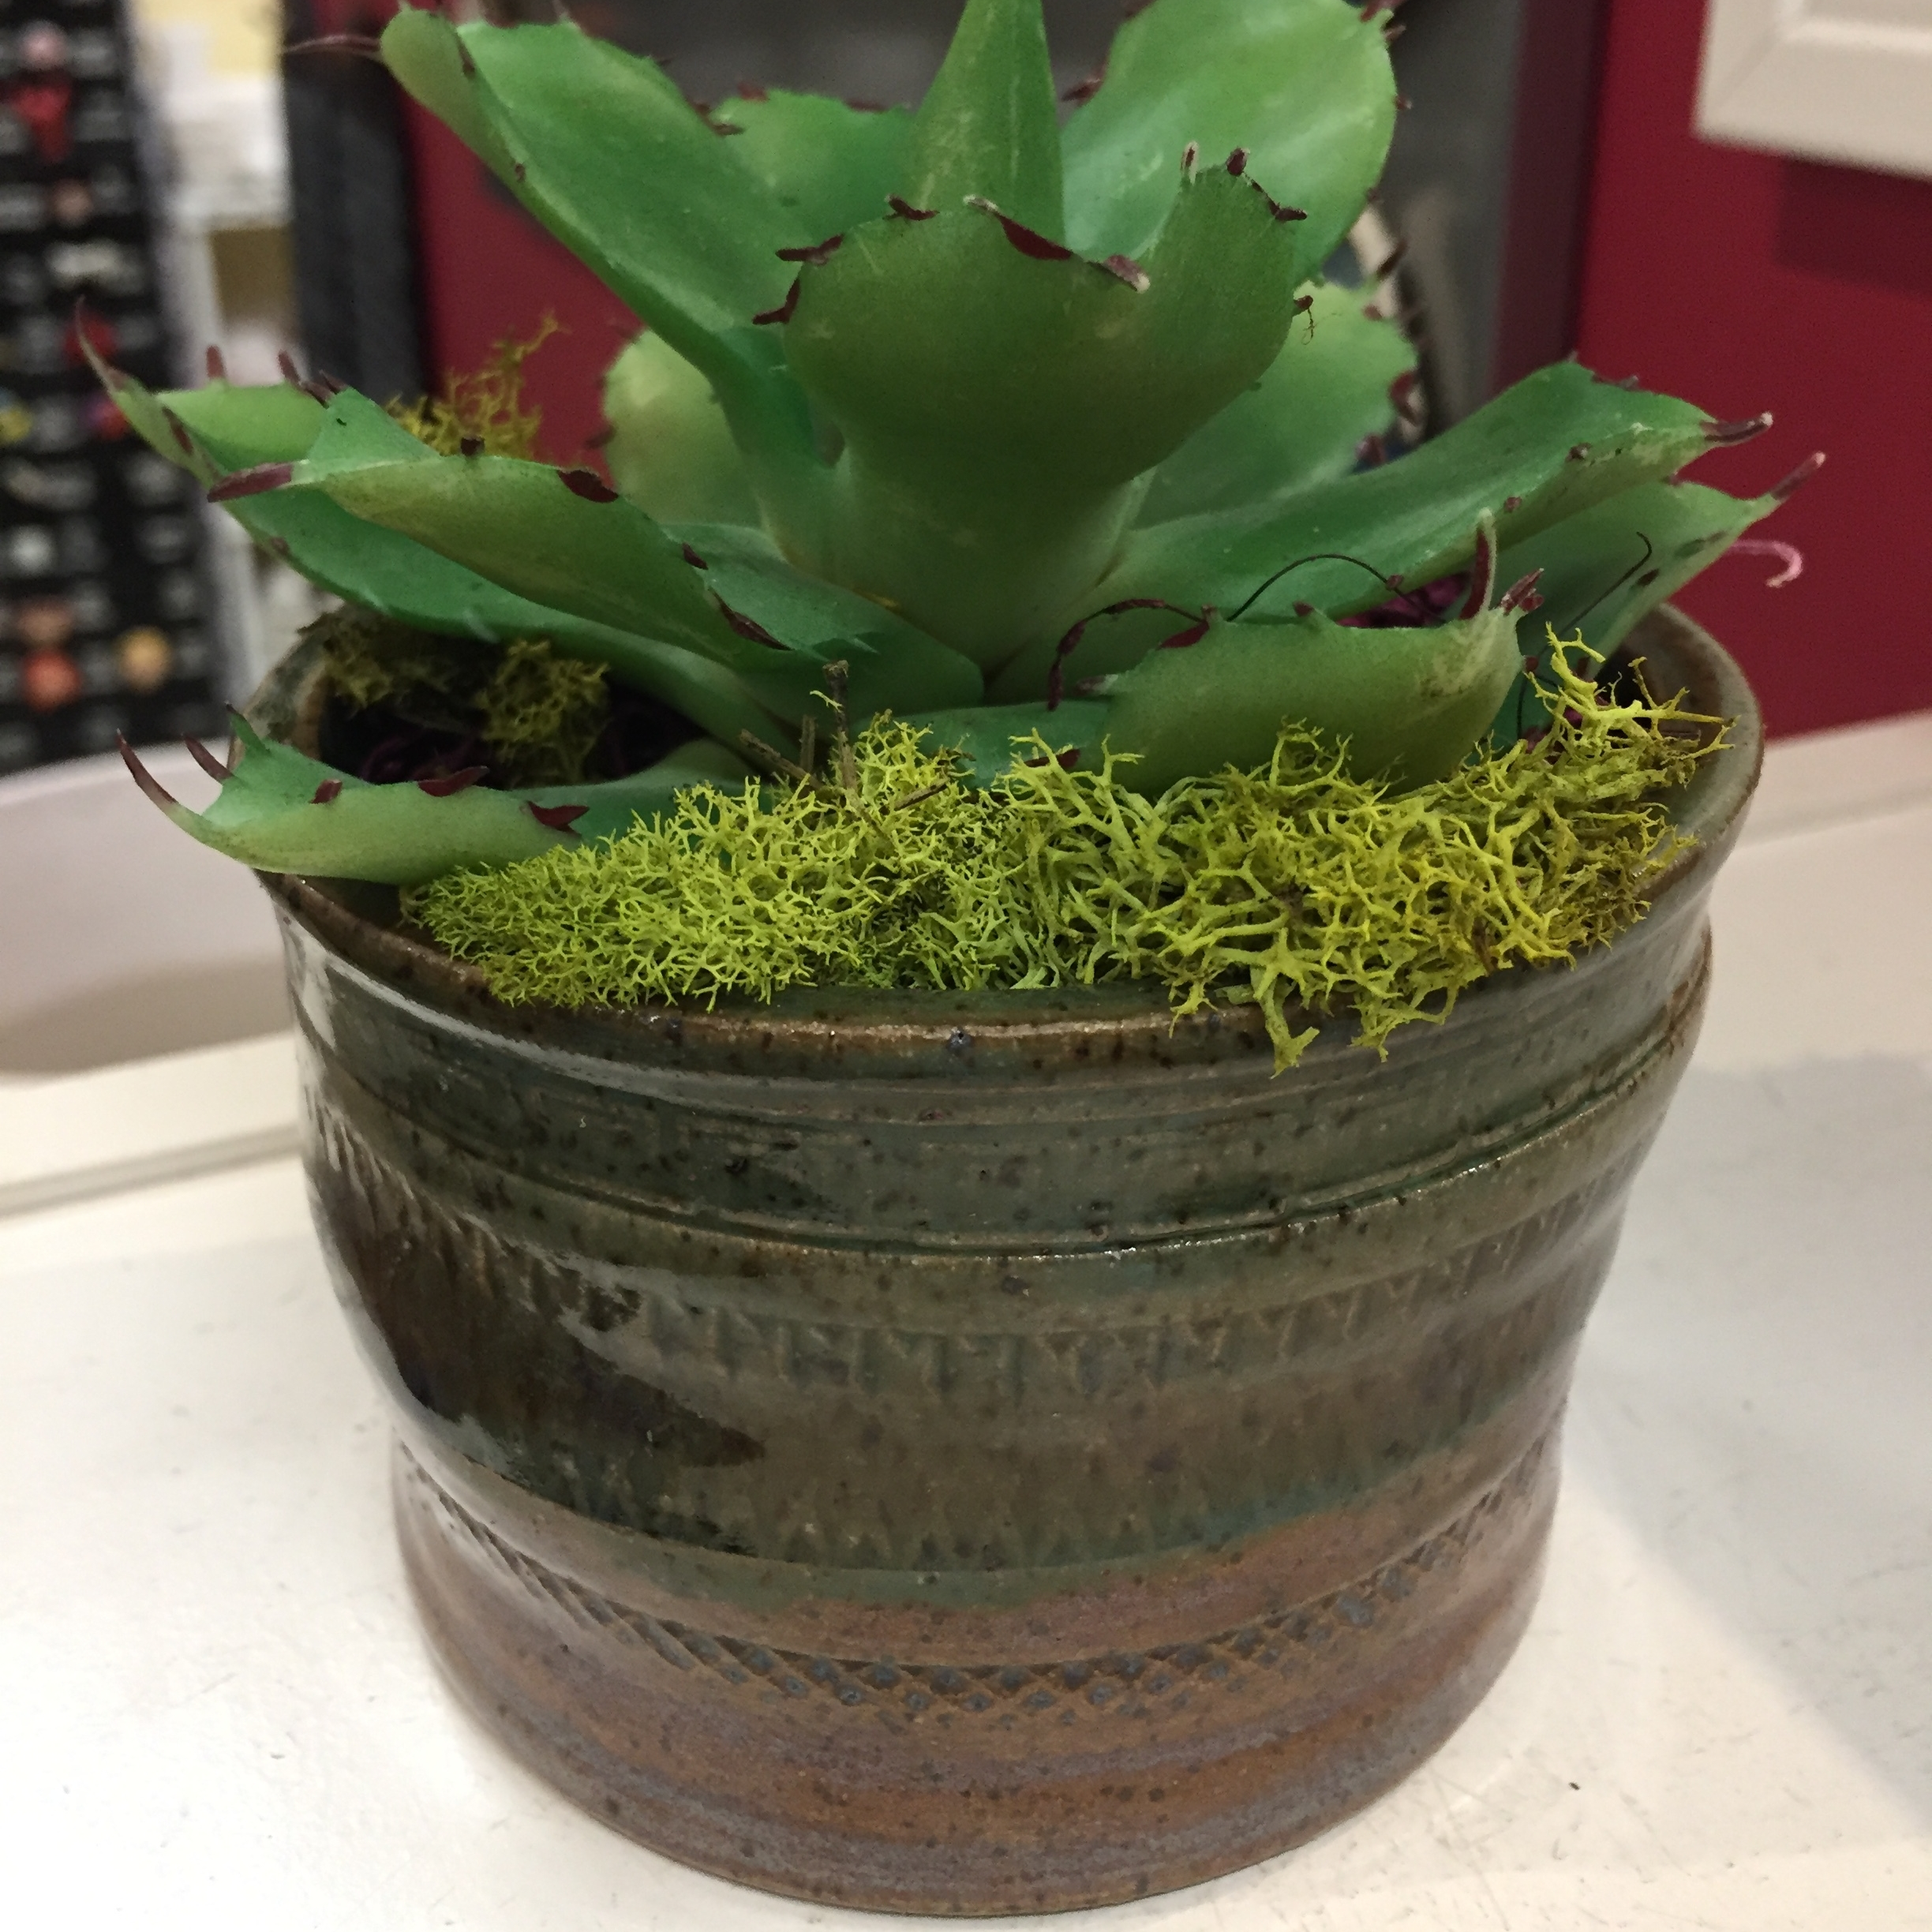 Fired, glazed and happy as a succulent planter.